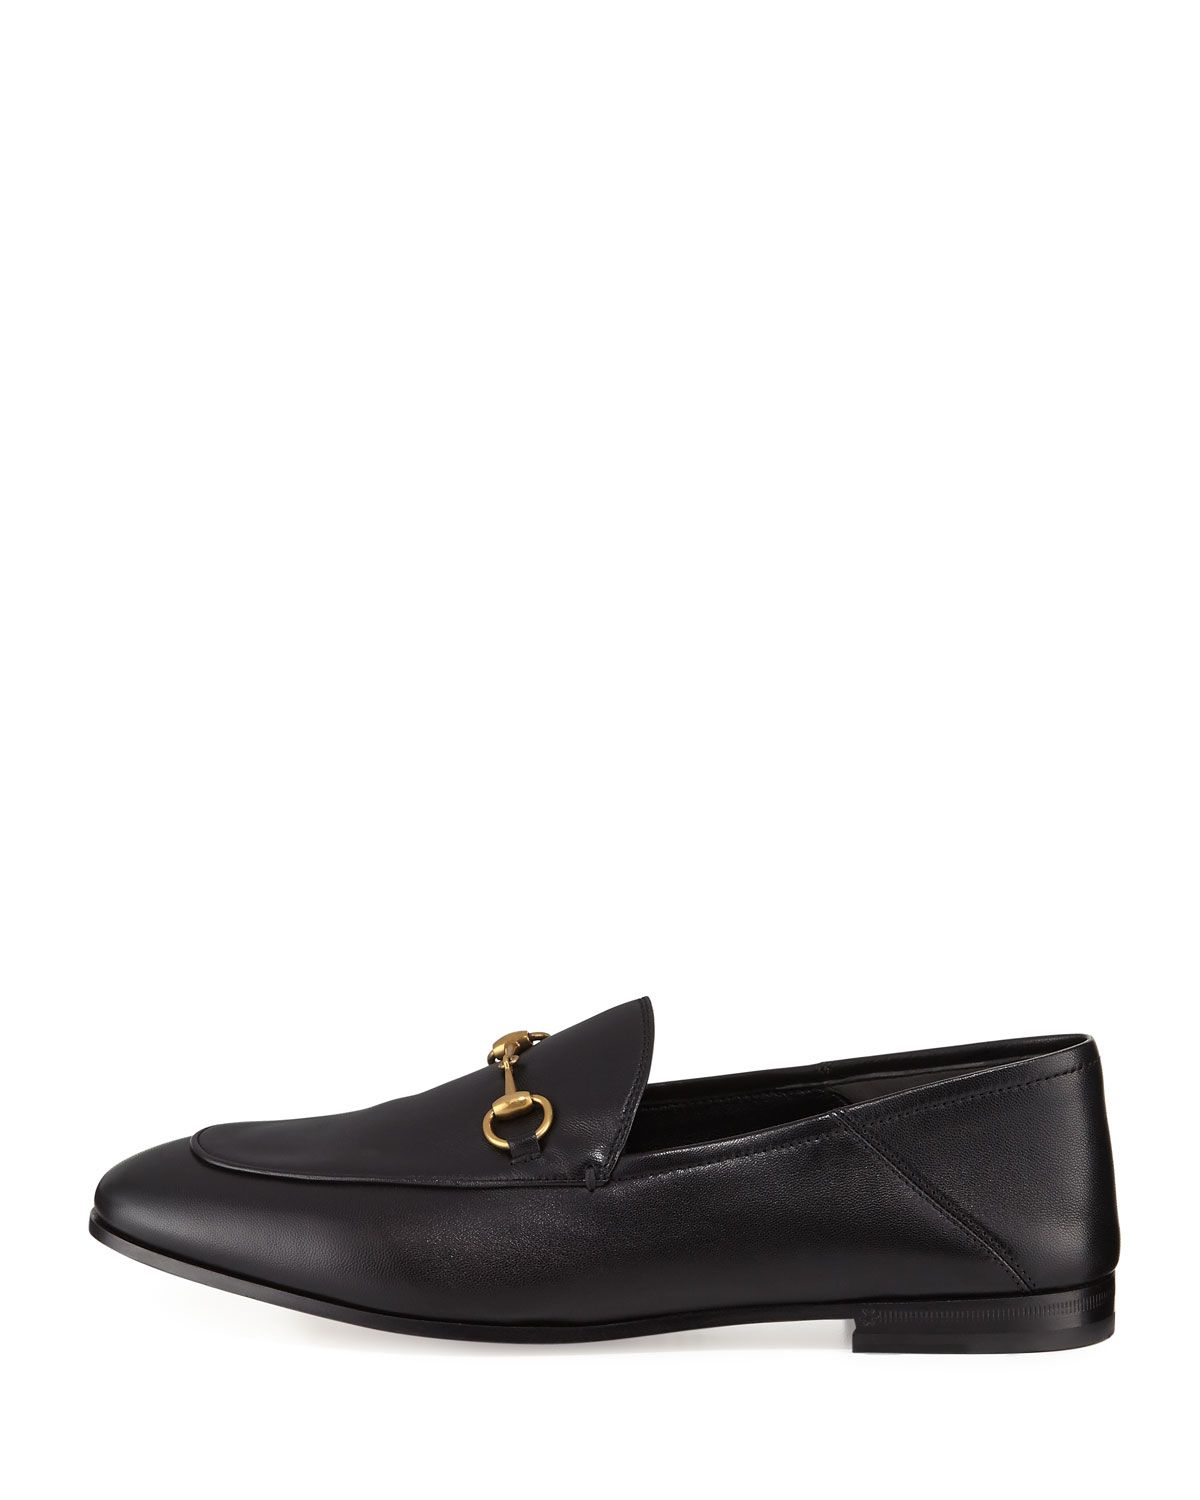 68a62490256 Gucci Brixton Leather Horsebit Loafer